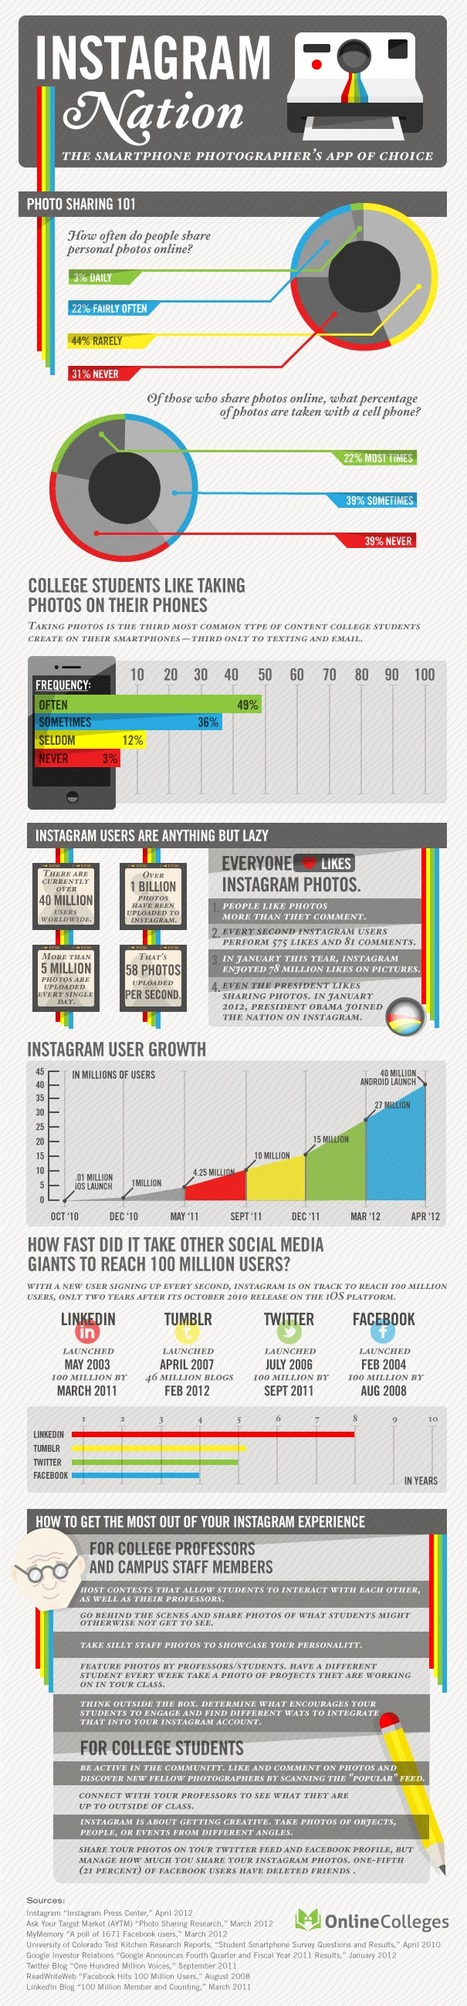 The Explosive Growth of Instagram - Infographic | Instagram Stats, Strategies + Tips | Scoop.it